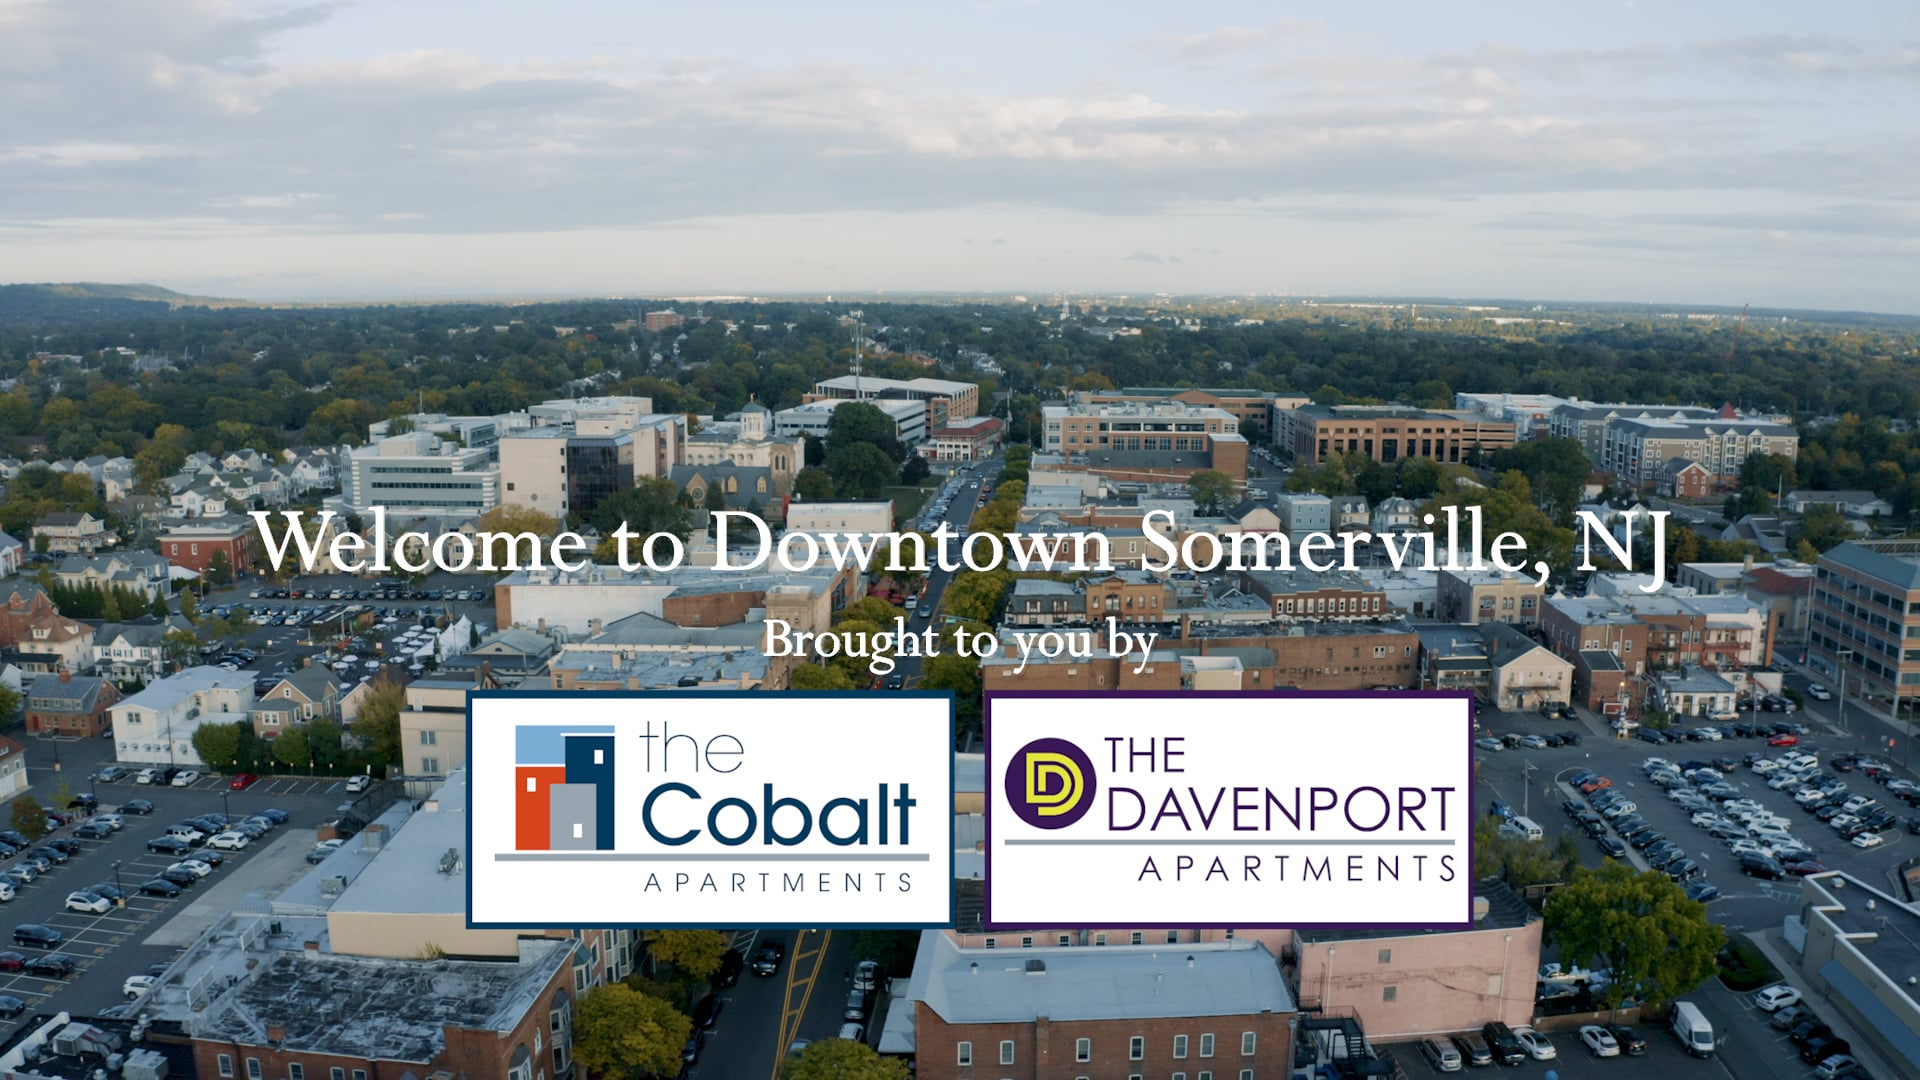 Welcome to Somerville - The Cobalt and The Davenport Apartments